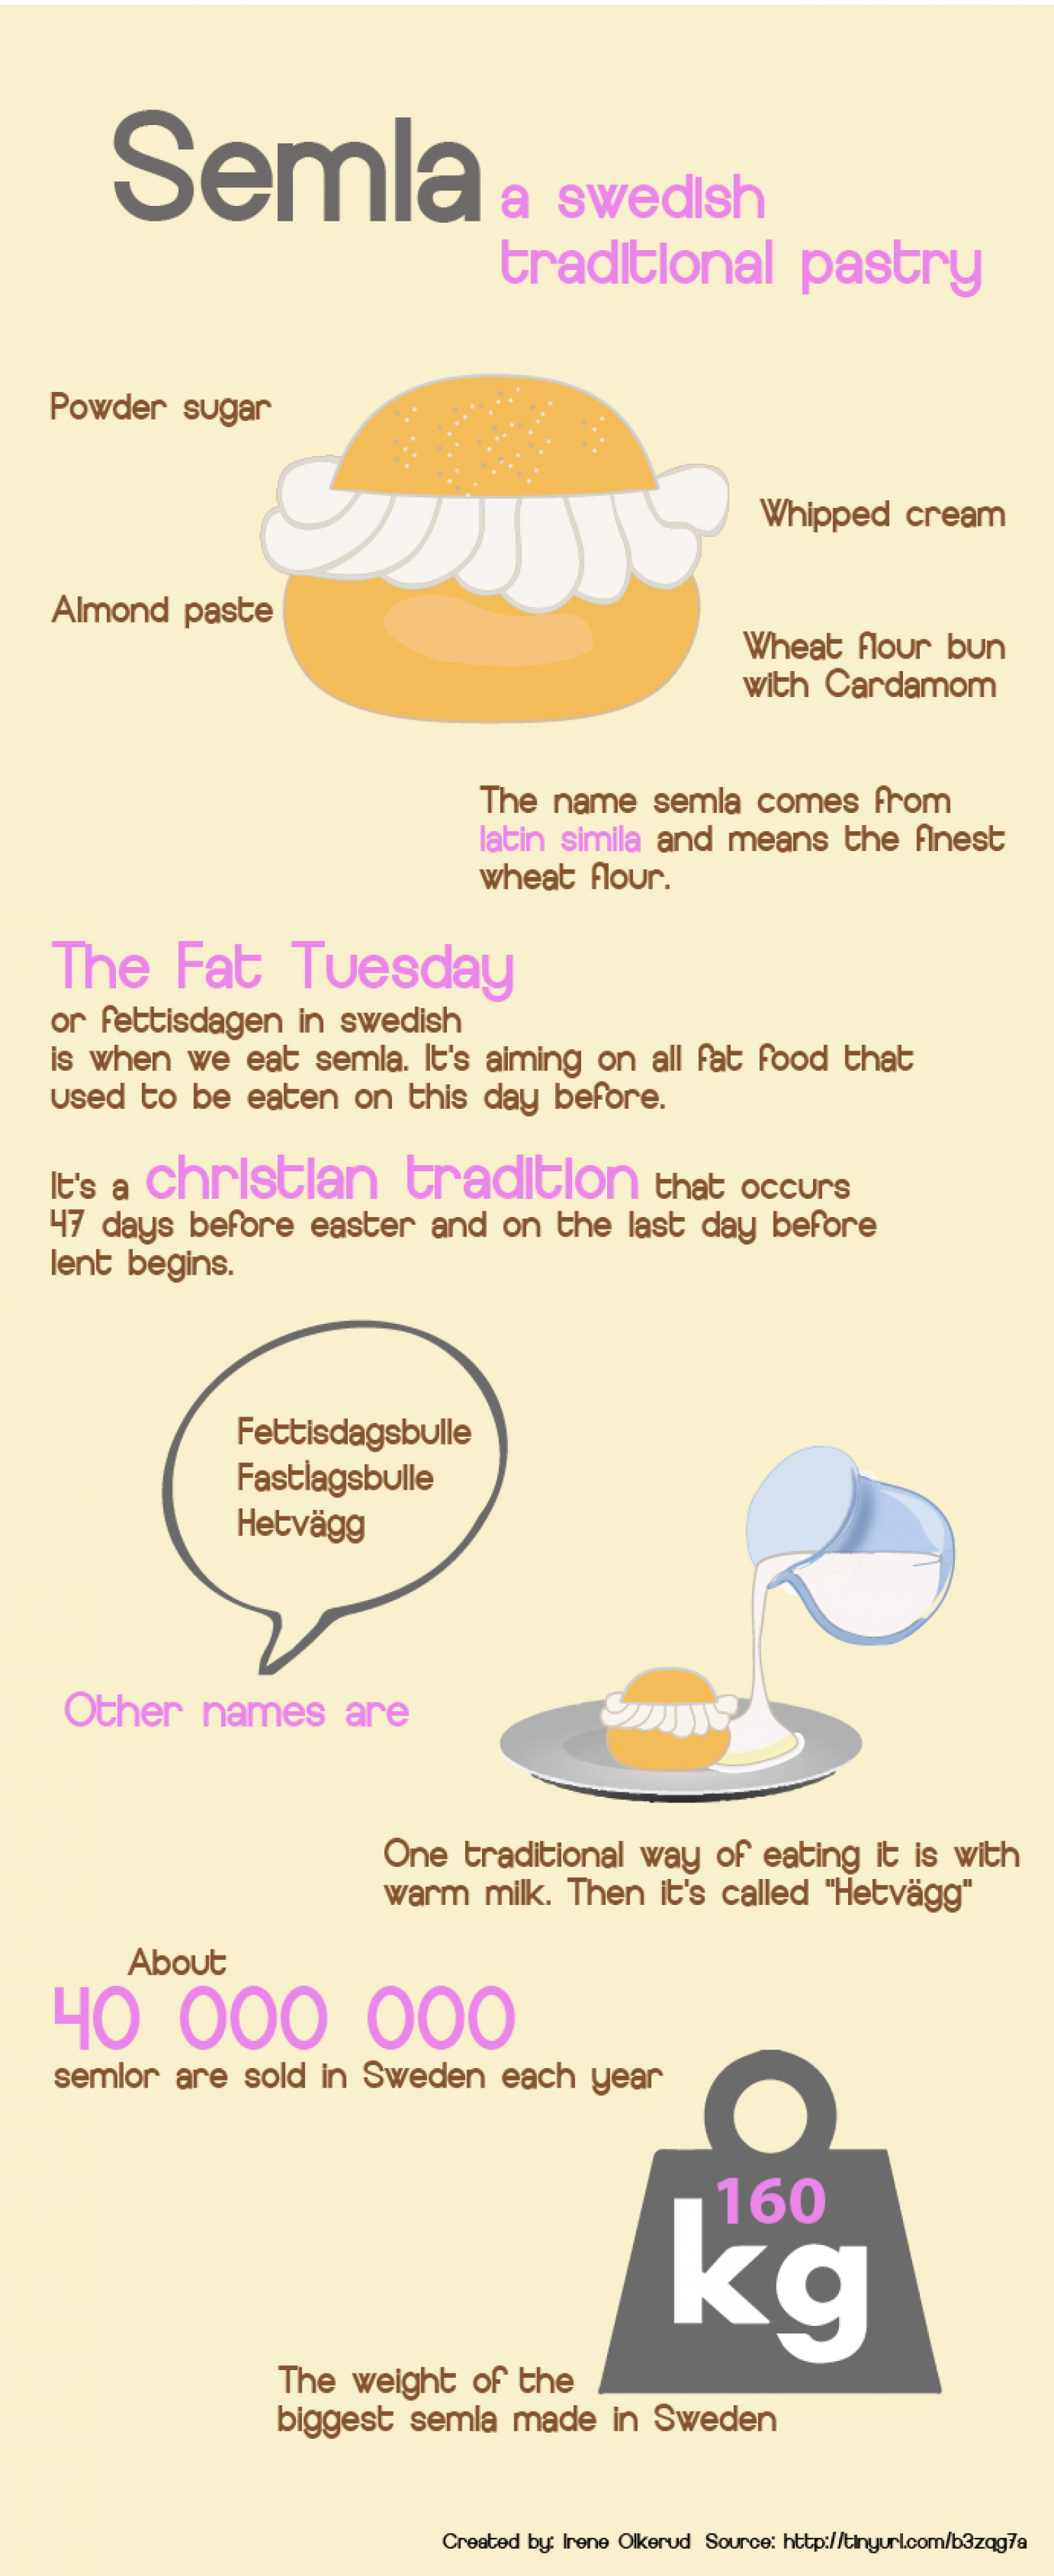 The Semla Infographic